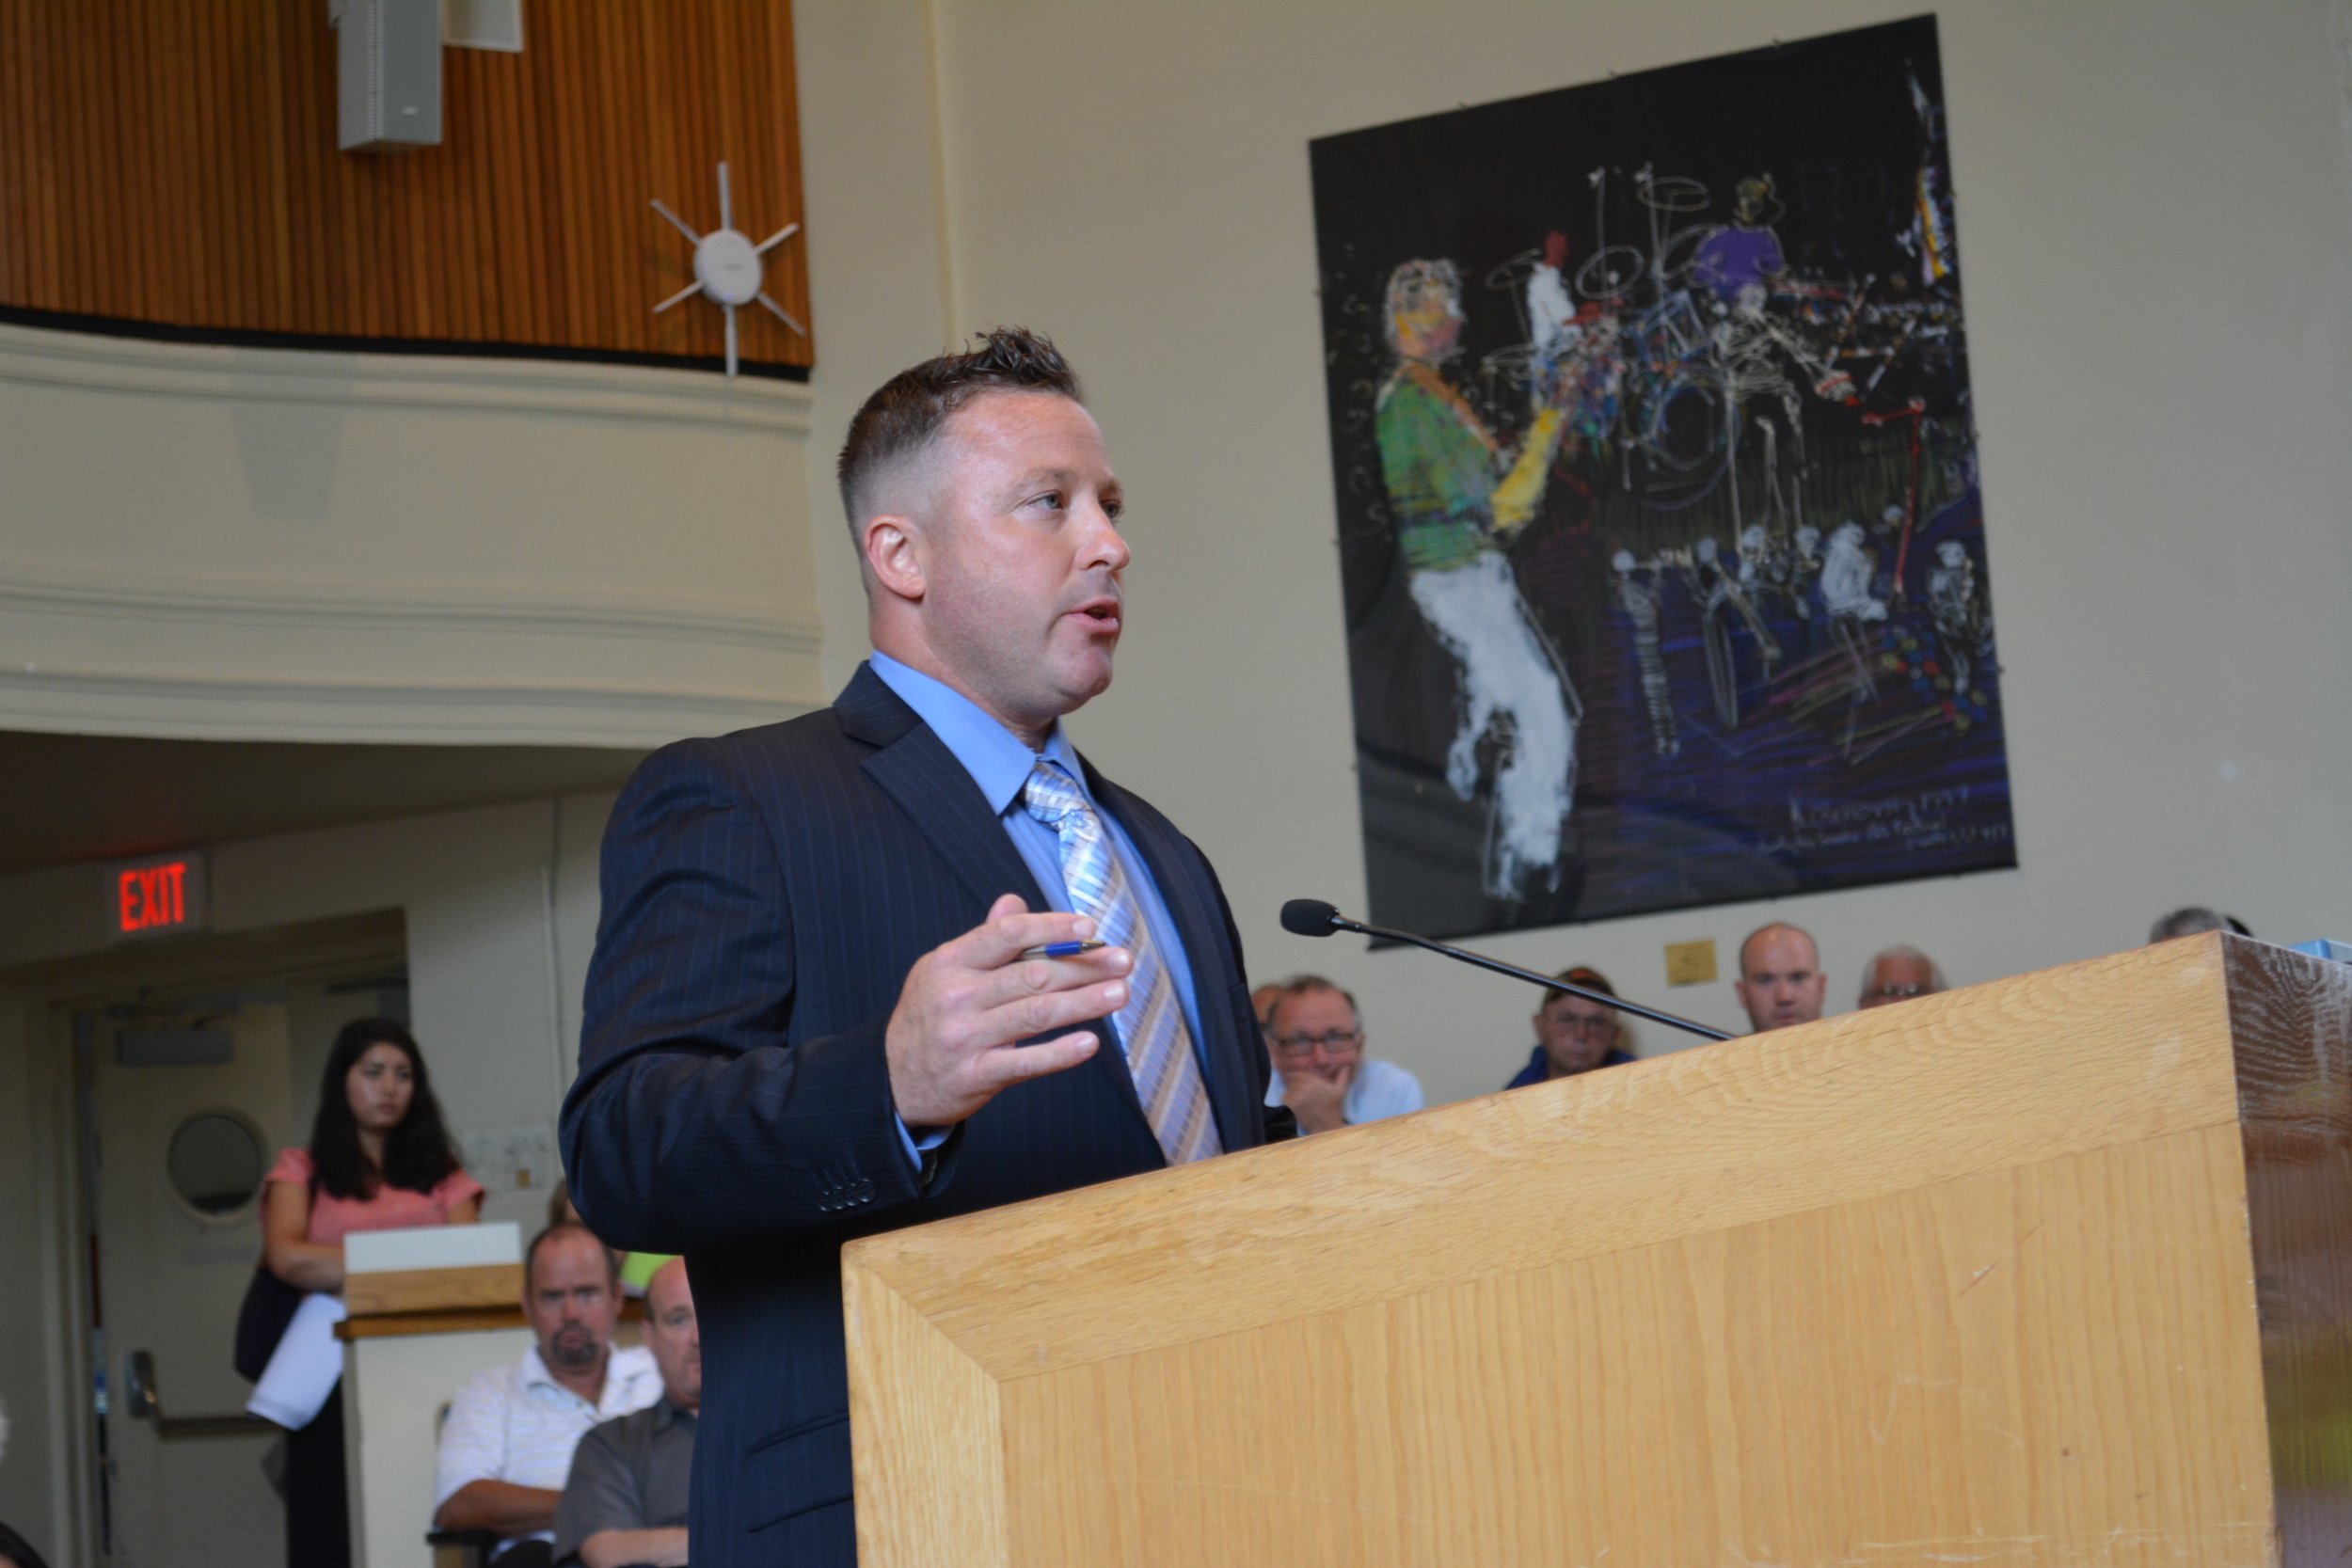 Michael Tessitore, president of Hunters For Deer, speaks at Tuesday's town board meeting about a proposal that would allow for in-season longbow deer hunting on private properties in Asharoken and Eatons Neck.